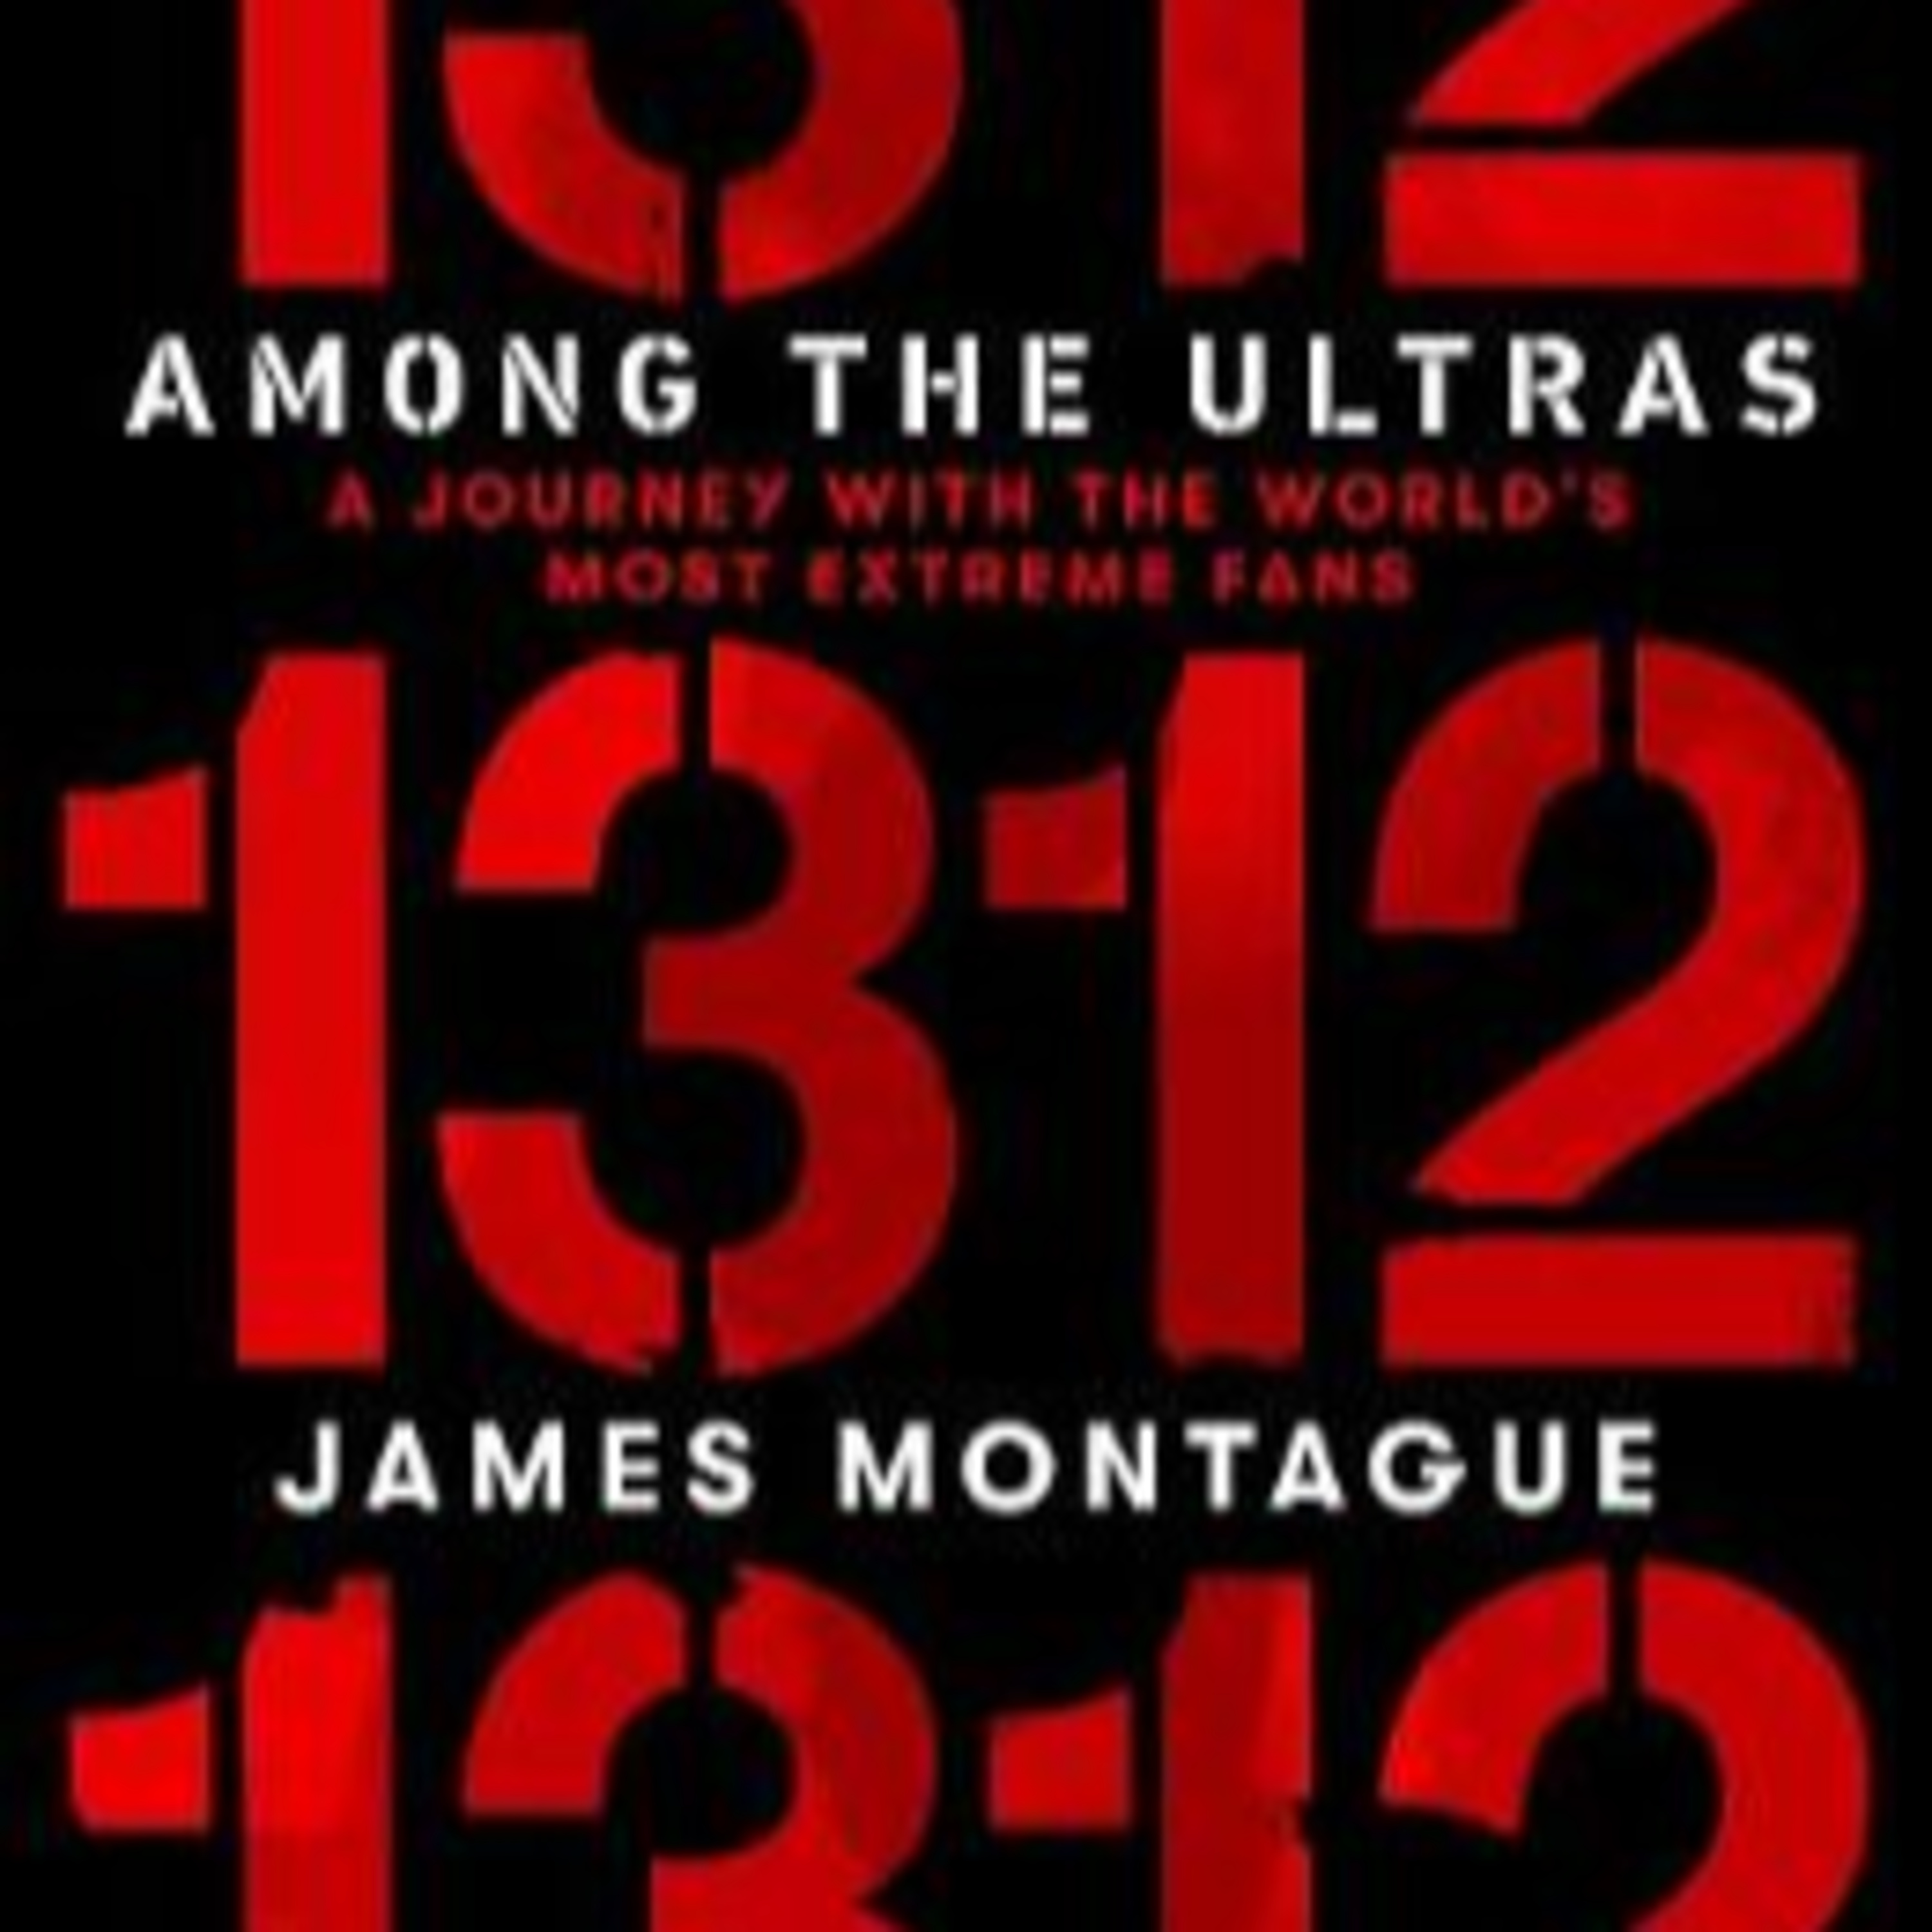 """This month a three feature special James Montague on """"1312 Among the Ultras"""" Andy Carter on """"Beyond the Pale"""" and """"The Long Long rd to Wembley"""""""